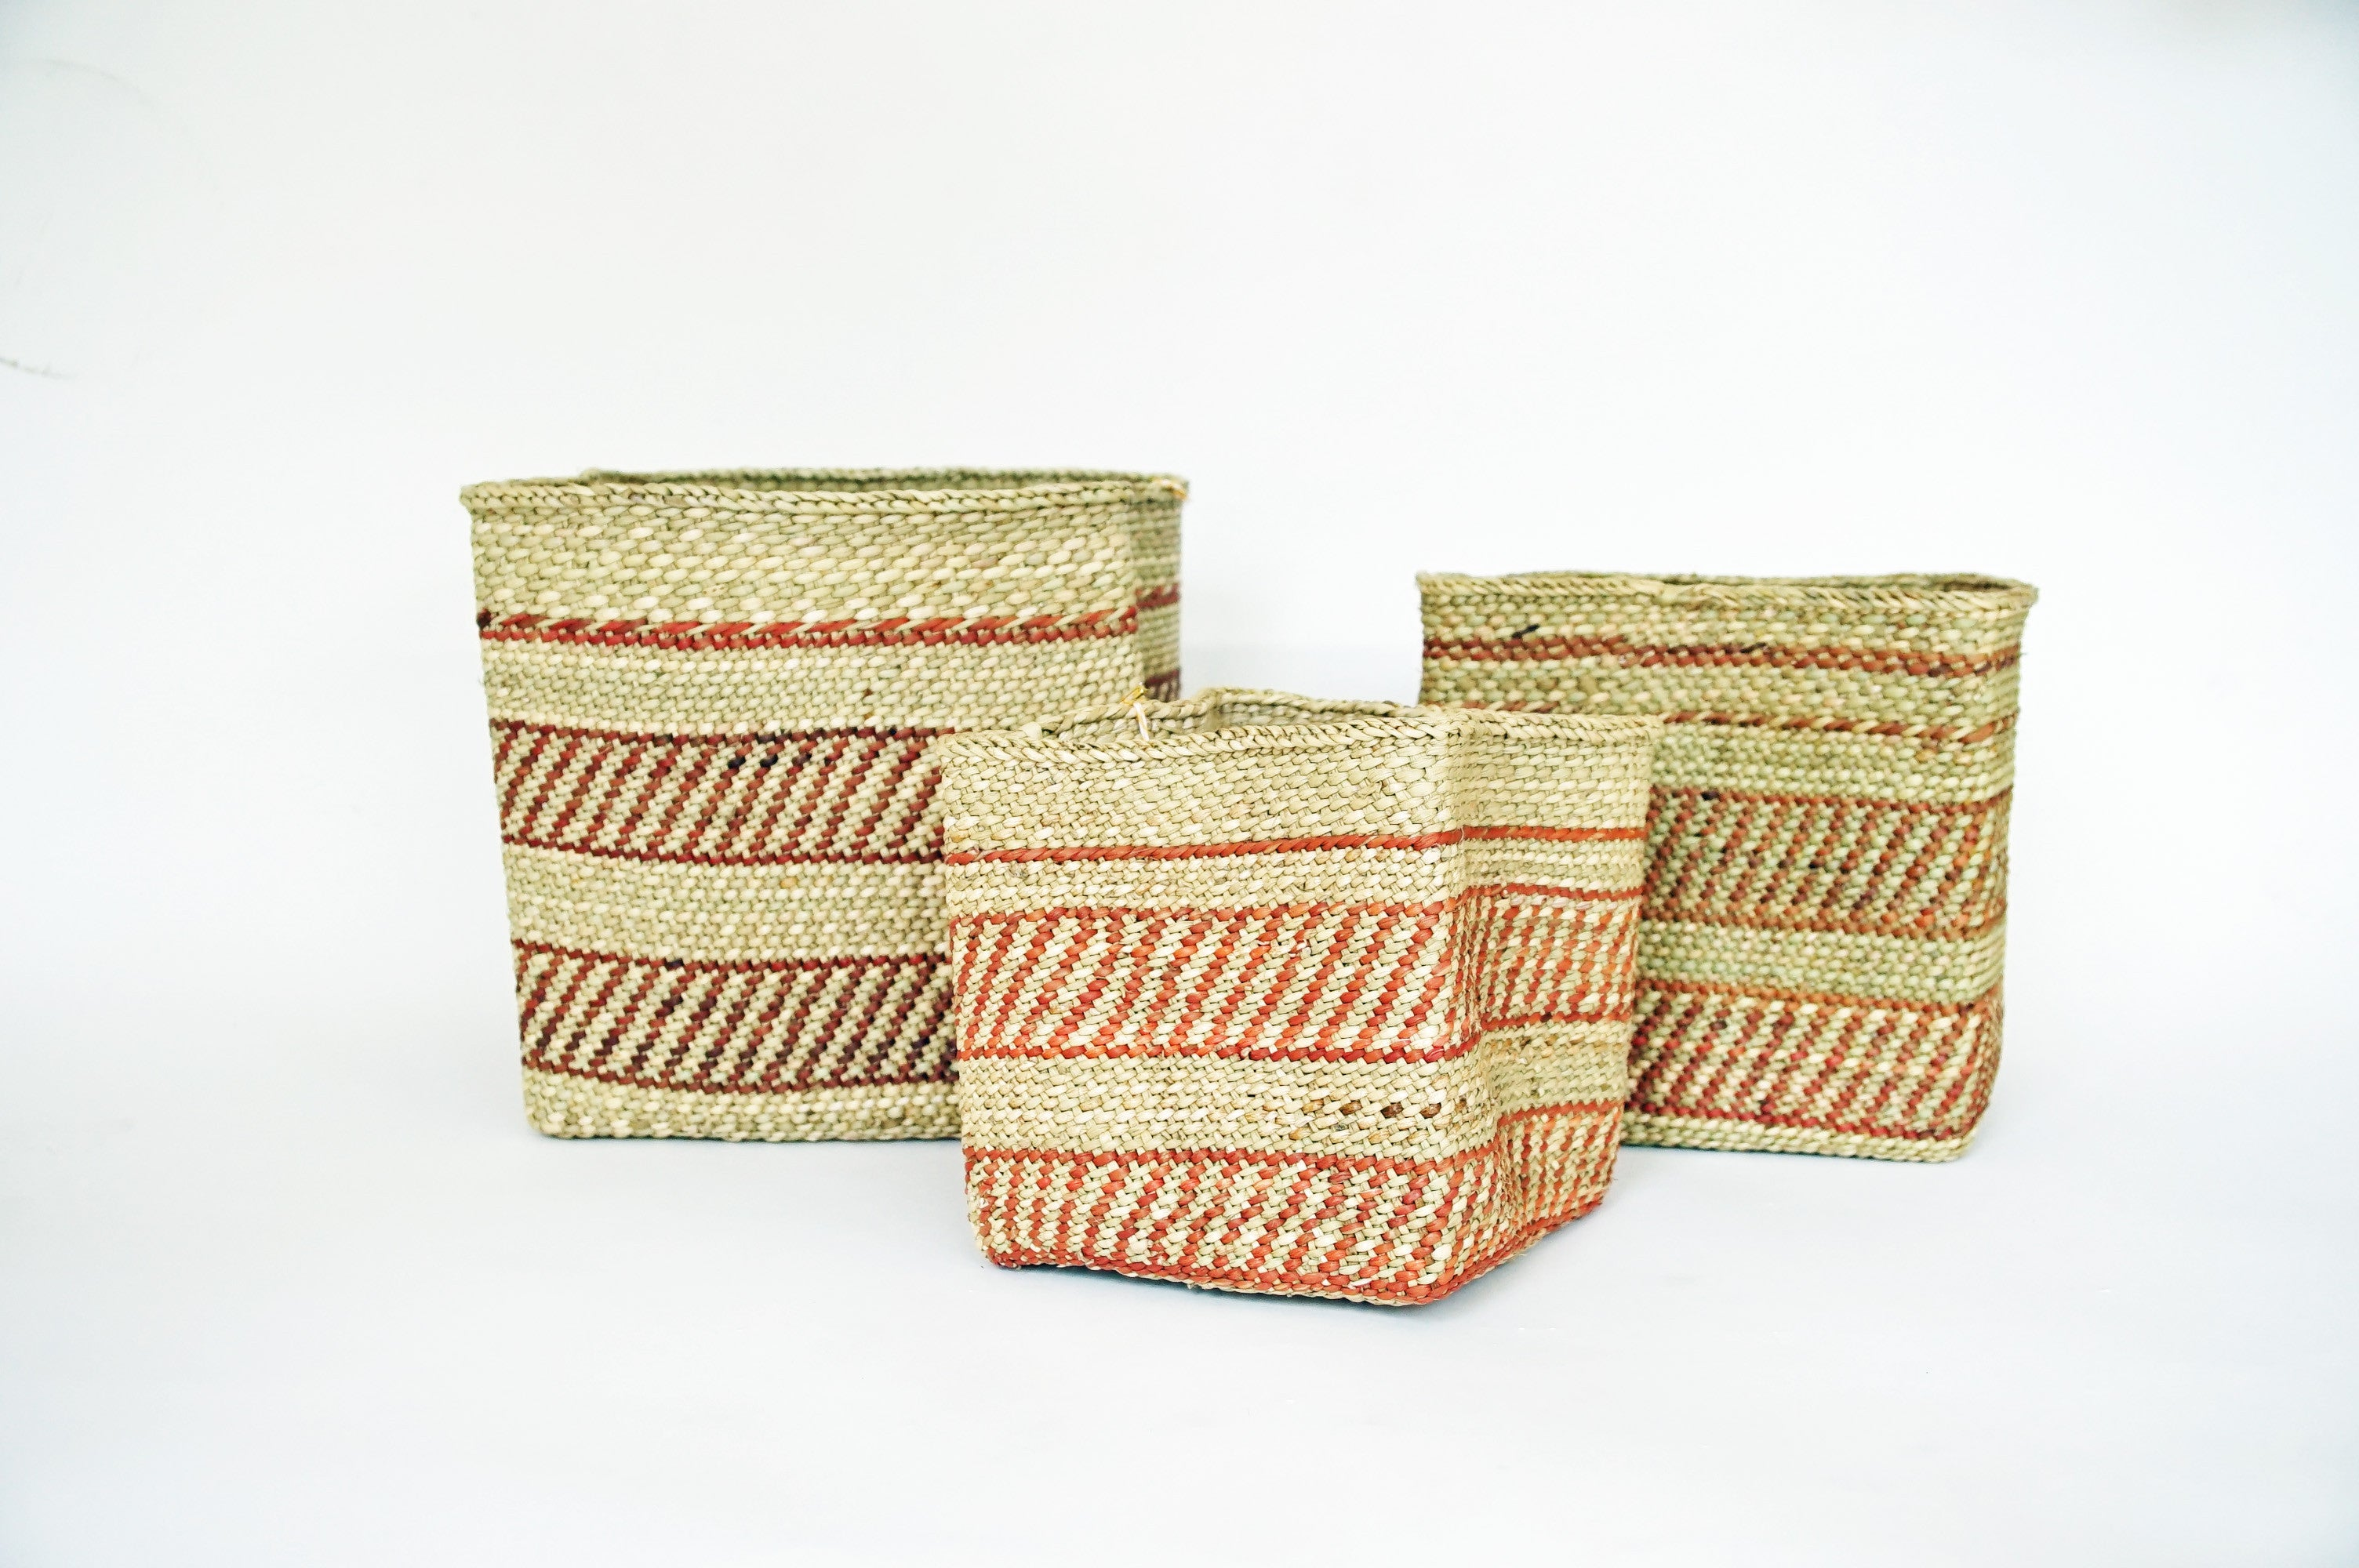 Square Nesting Baskets, Natural And Rust Pattern Willful Goods